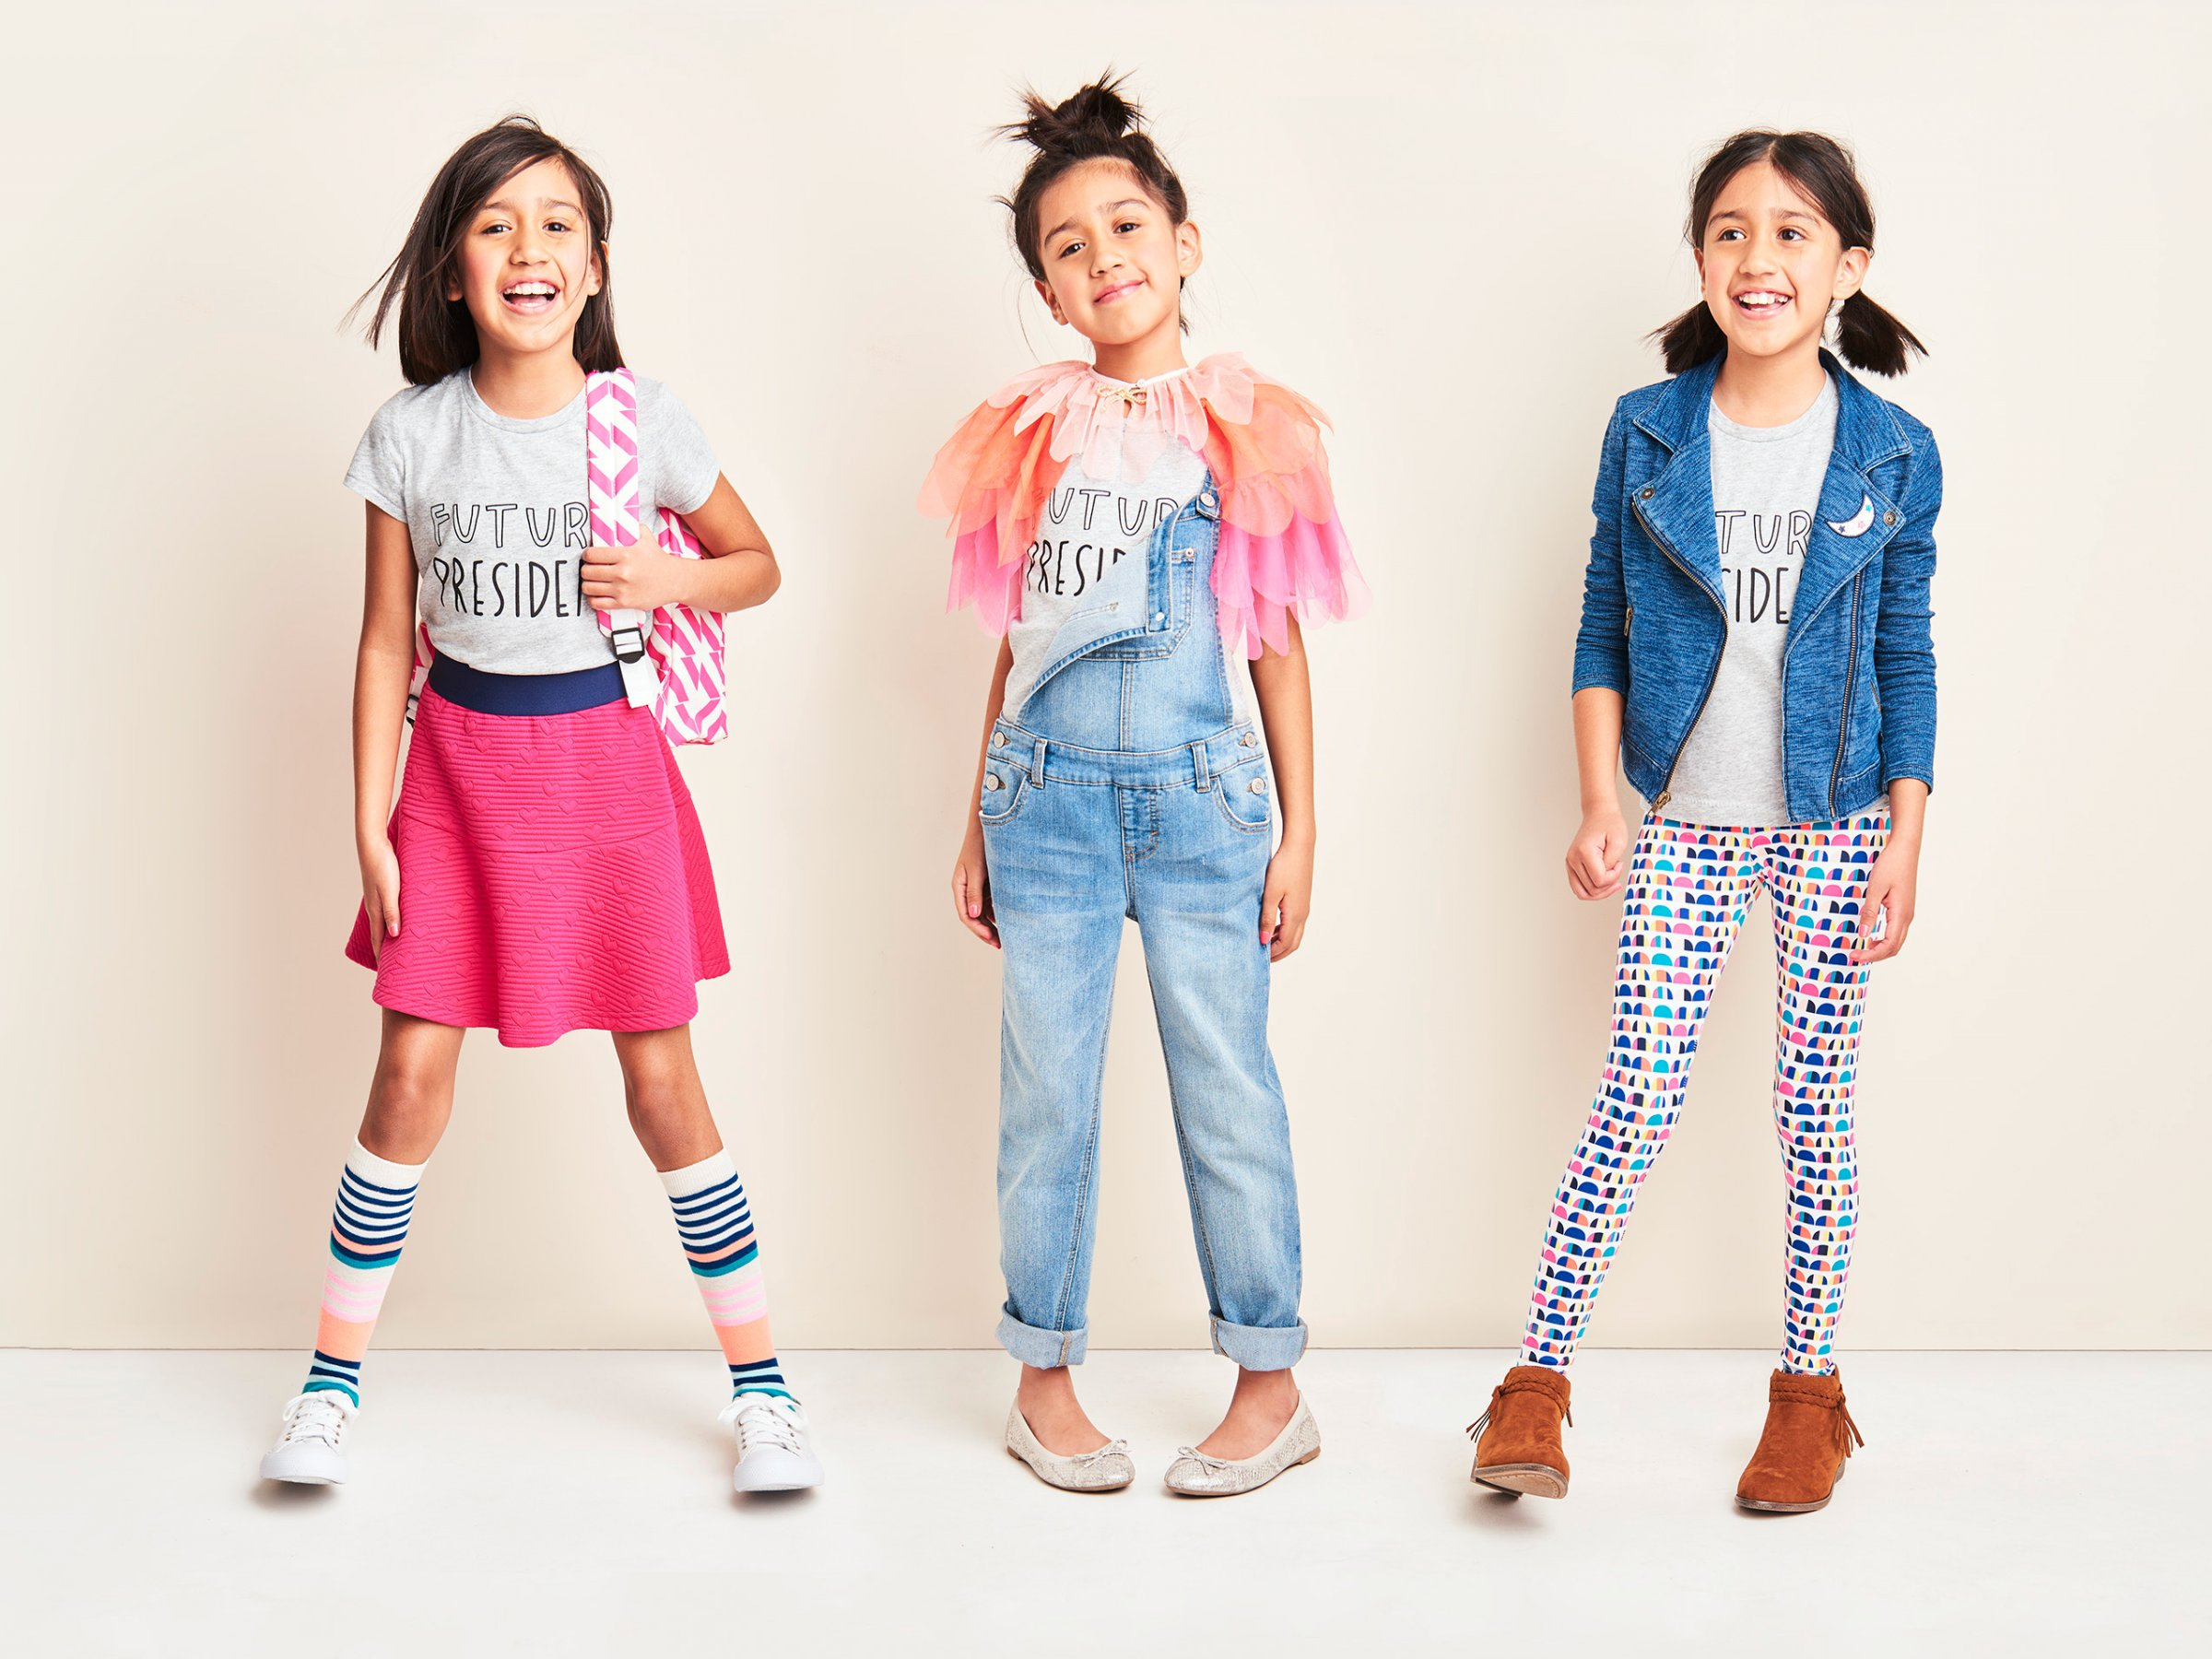 Shop kids' clothing at 440v.cf for the latest styles from your favorite brands. Find the best selection of kids' designer clothing at Buckle for a variety of looks.